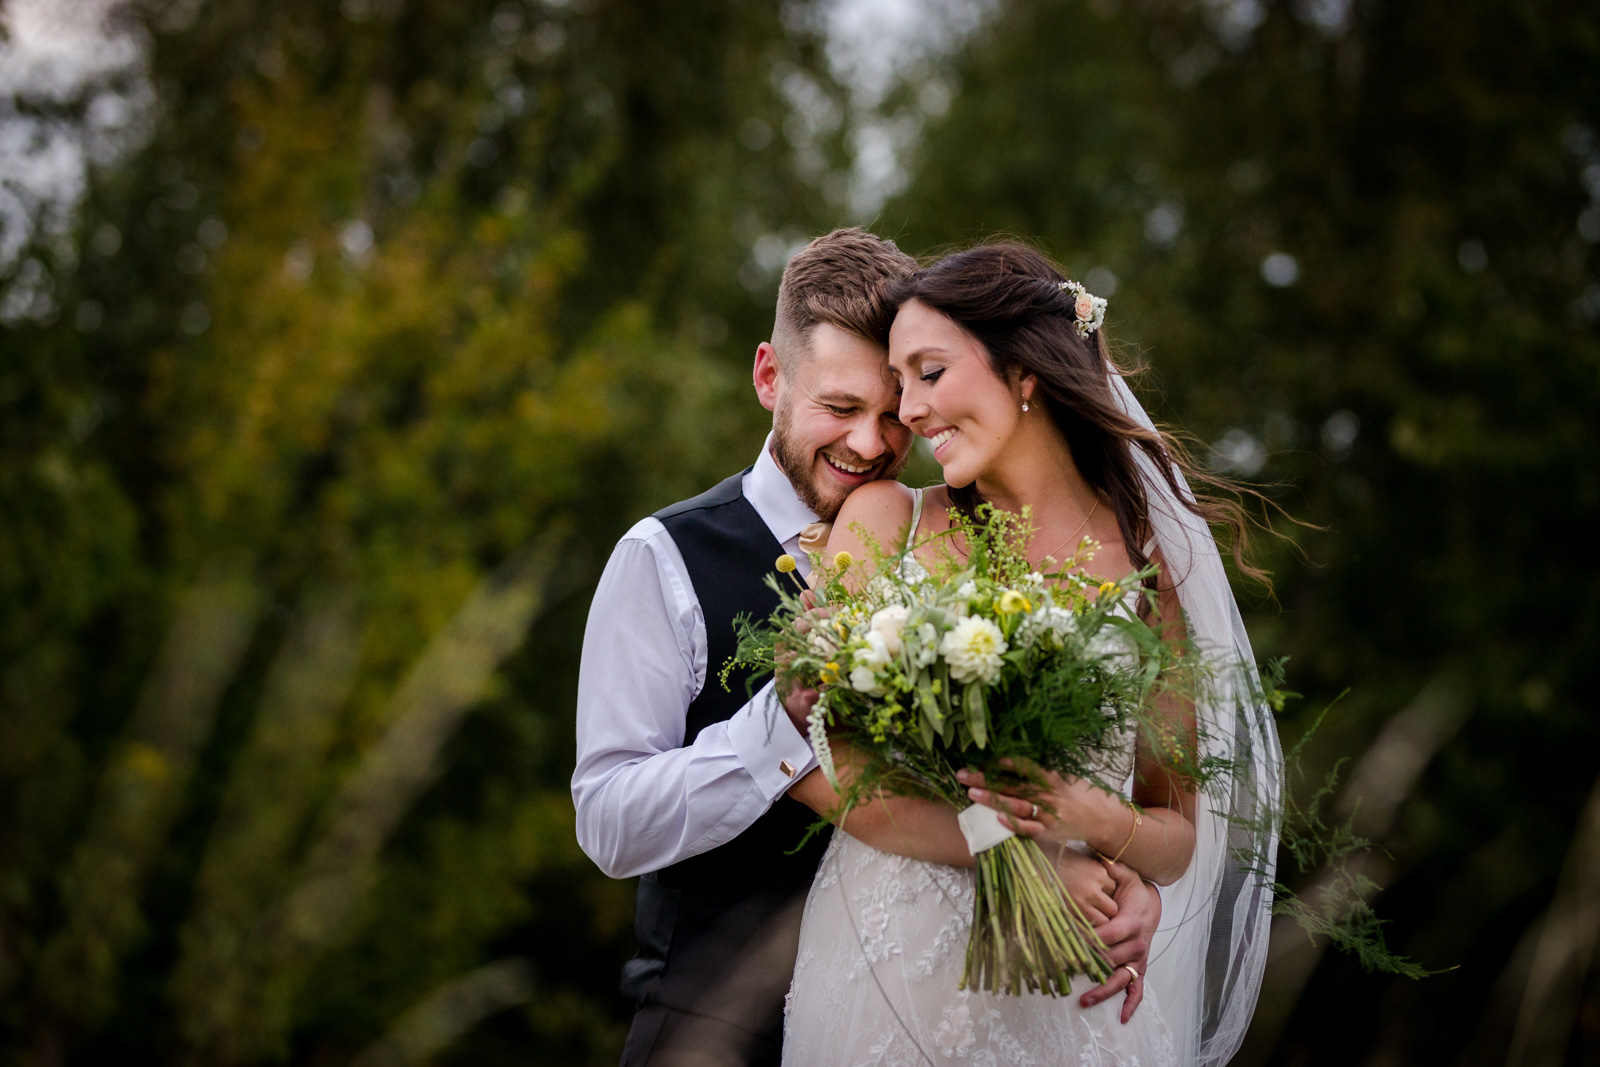 Bride and Groom at a wedding in Bedfordshire